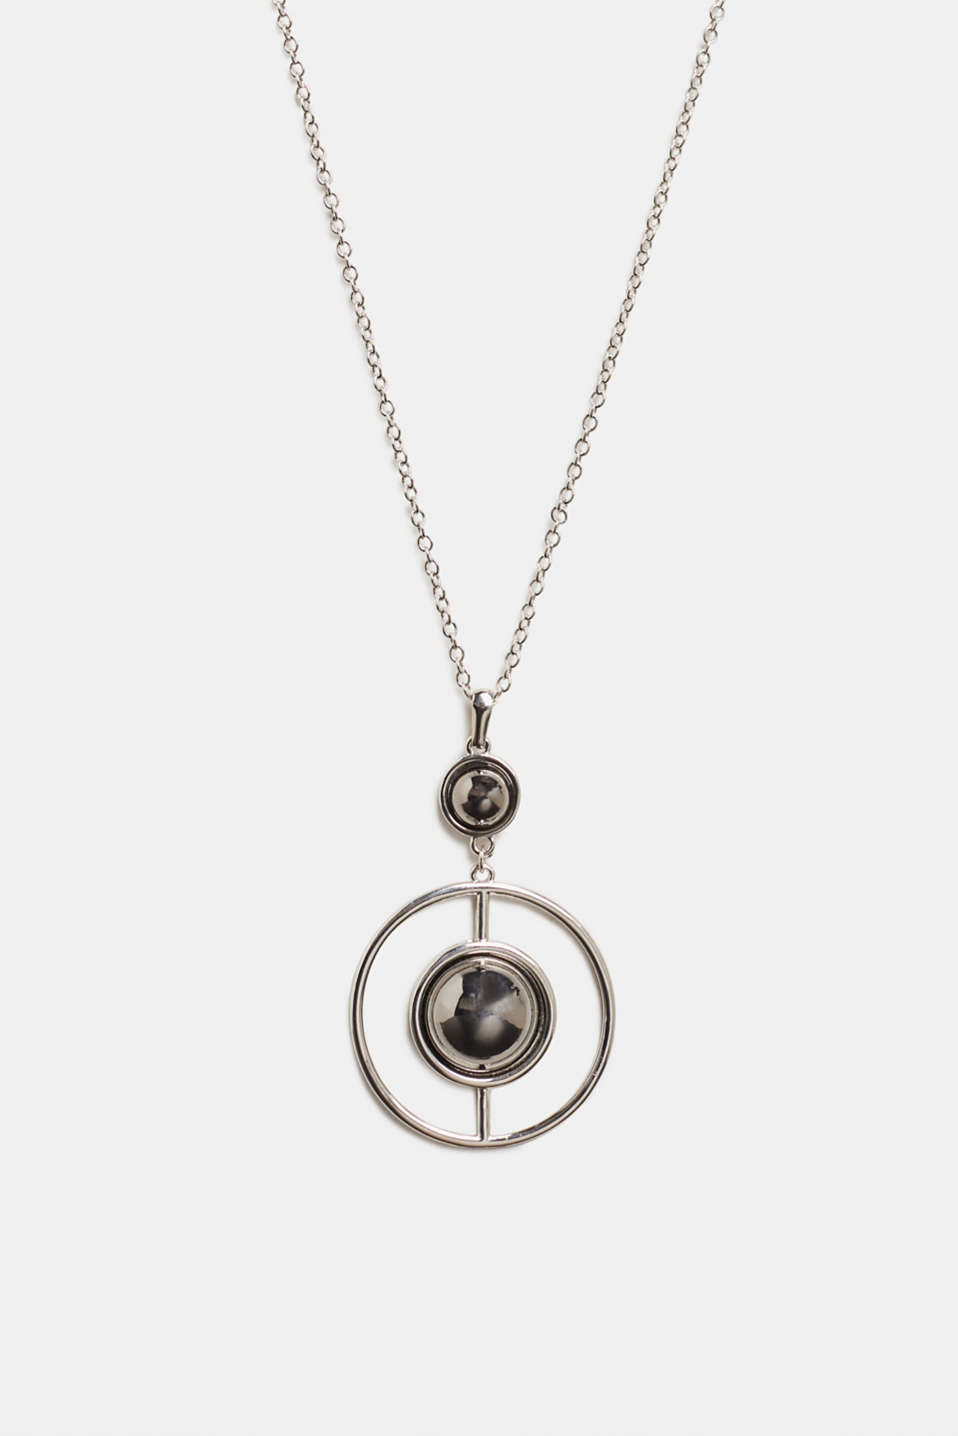 Necklace with a geometric pendant, SILVER, detail image number 0